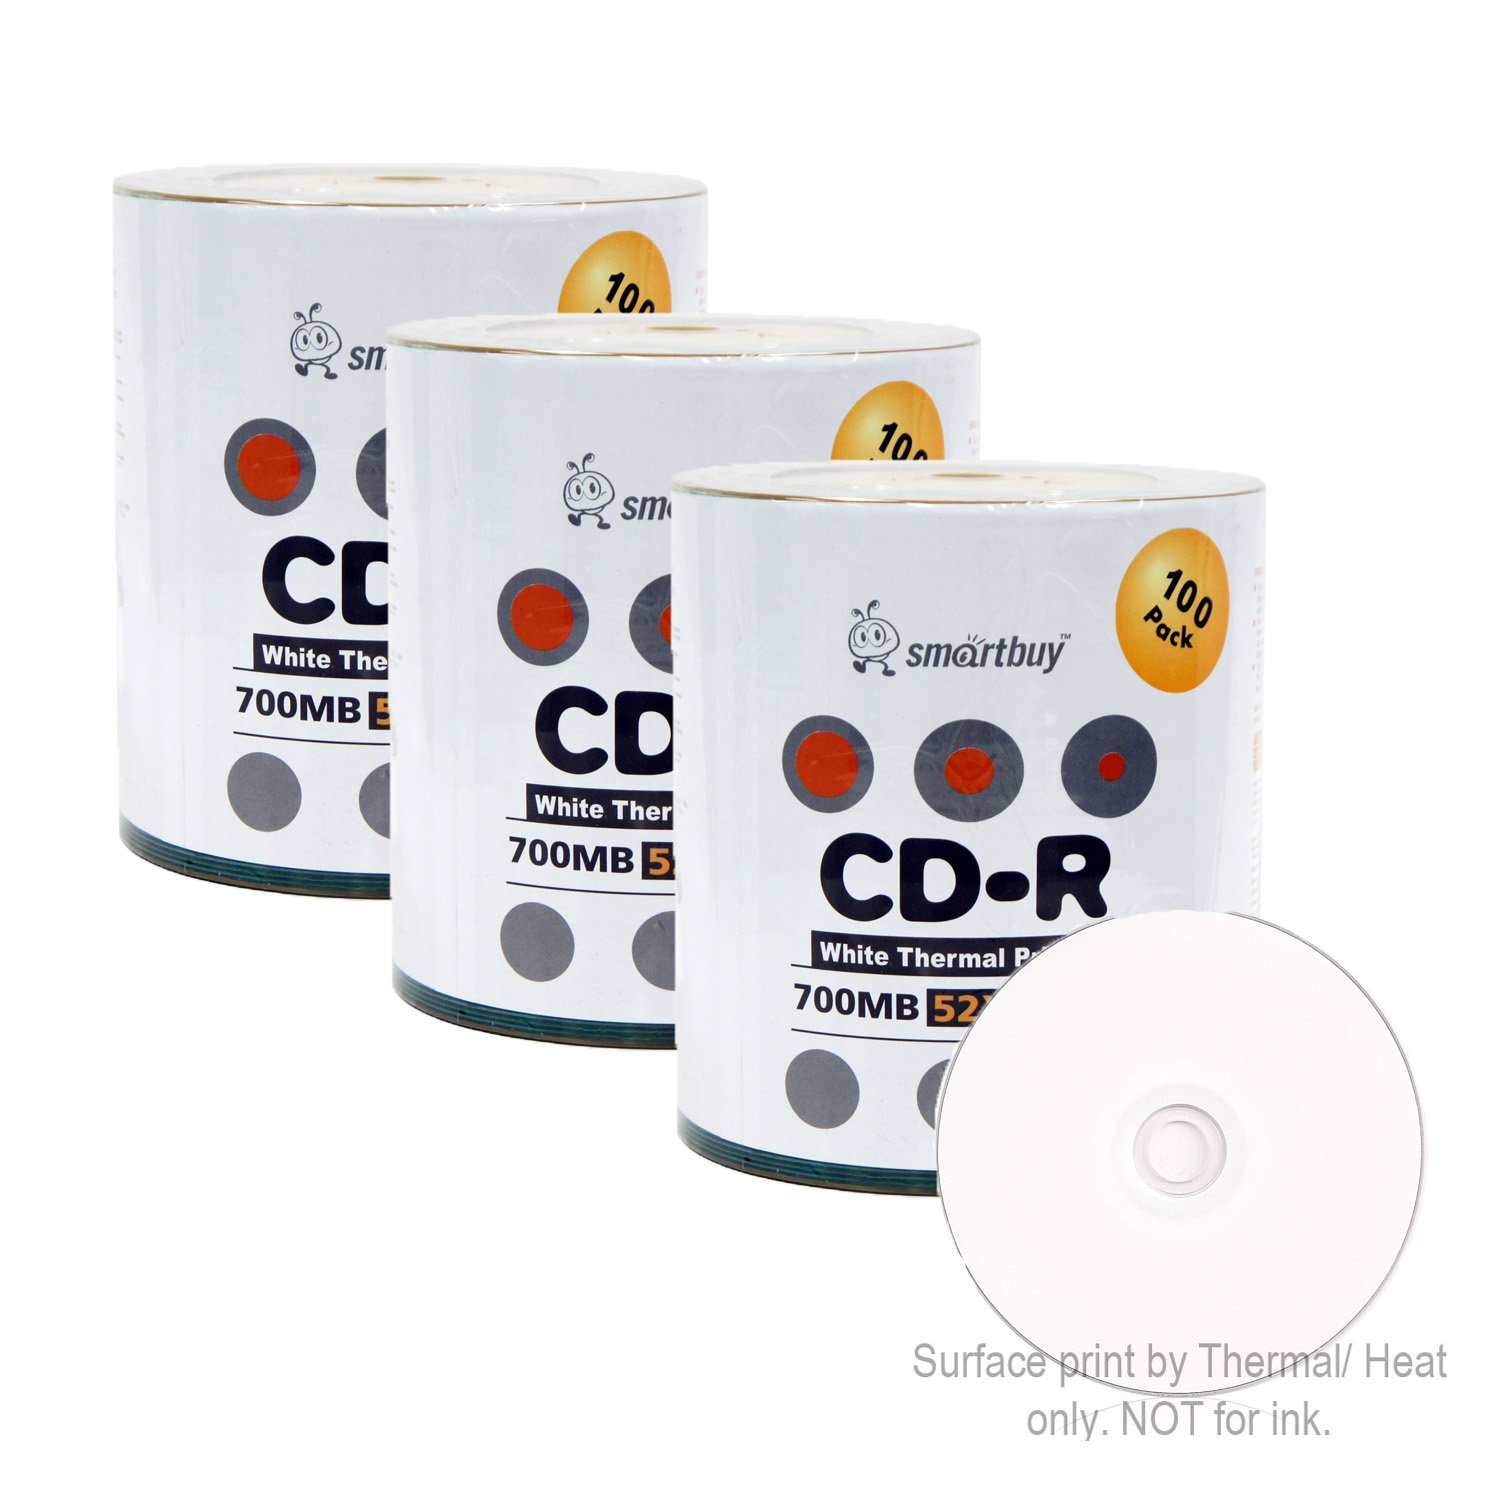 Smart Buy CD-R 300 Pack 700mb 52x Thermal Printable White Blank Recordable Discs, 300 Disc, 300pk by Smart Buy